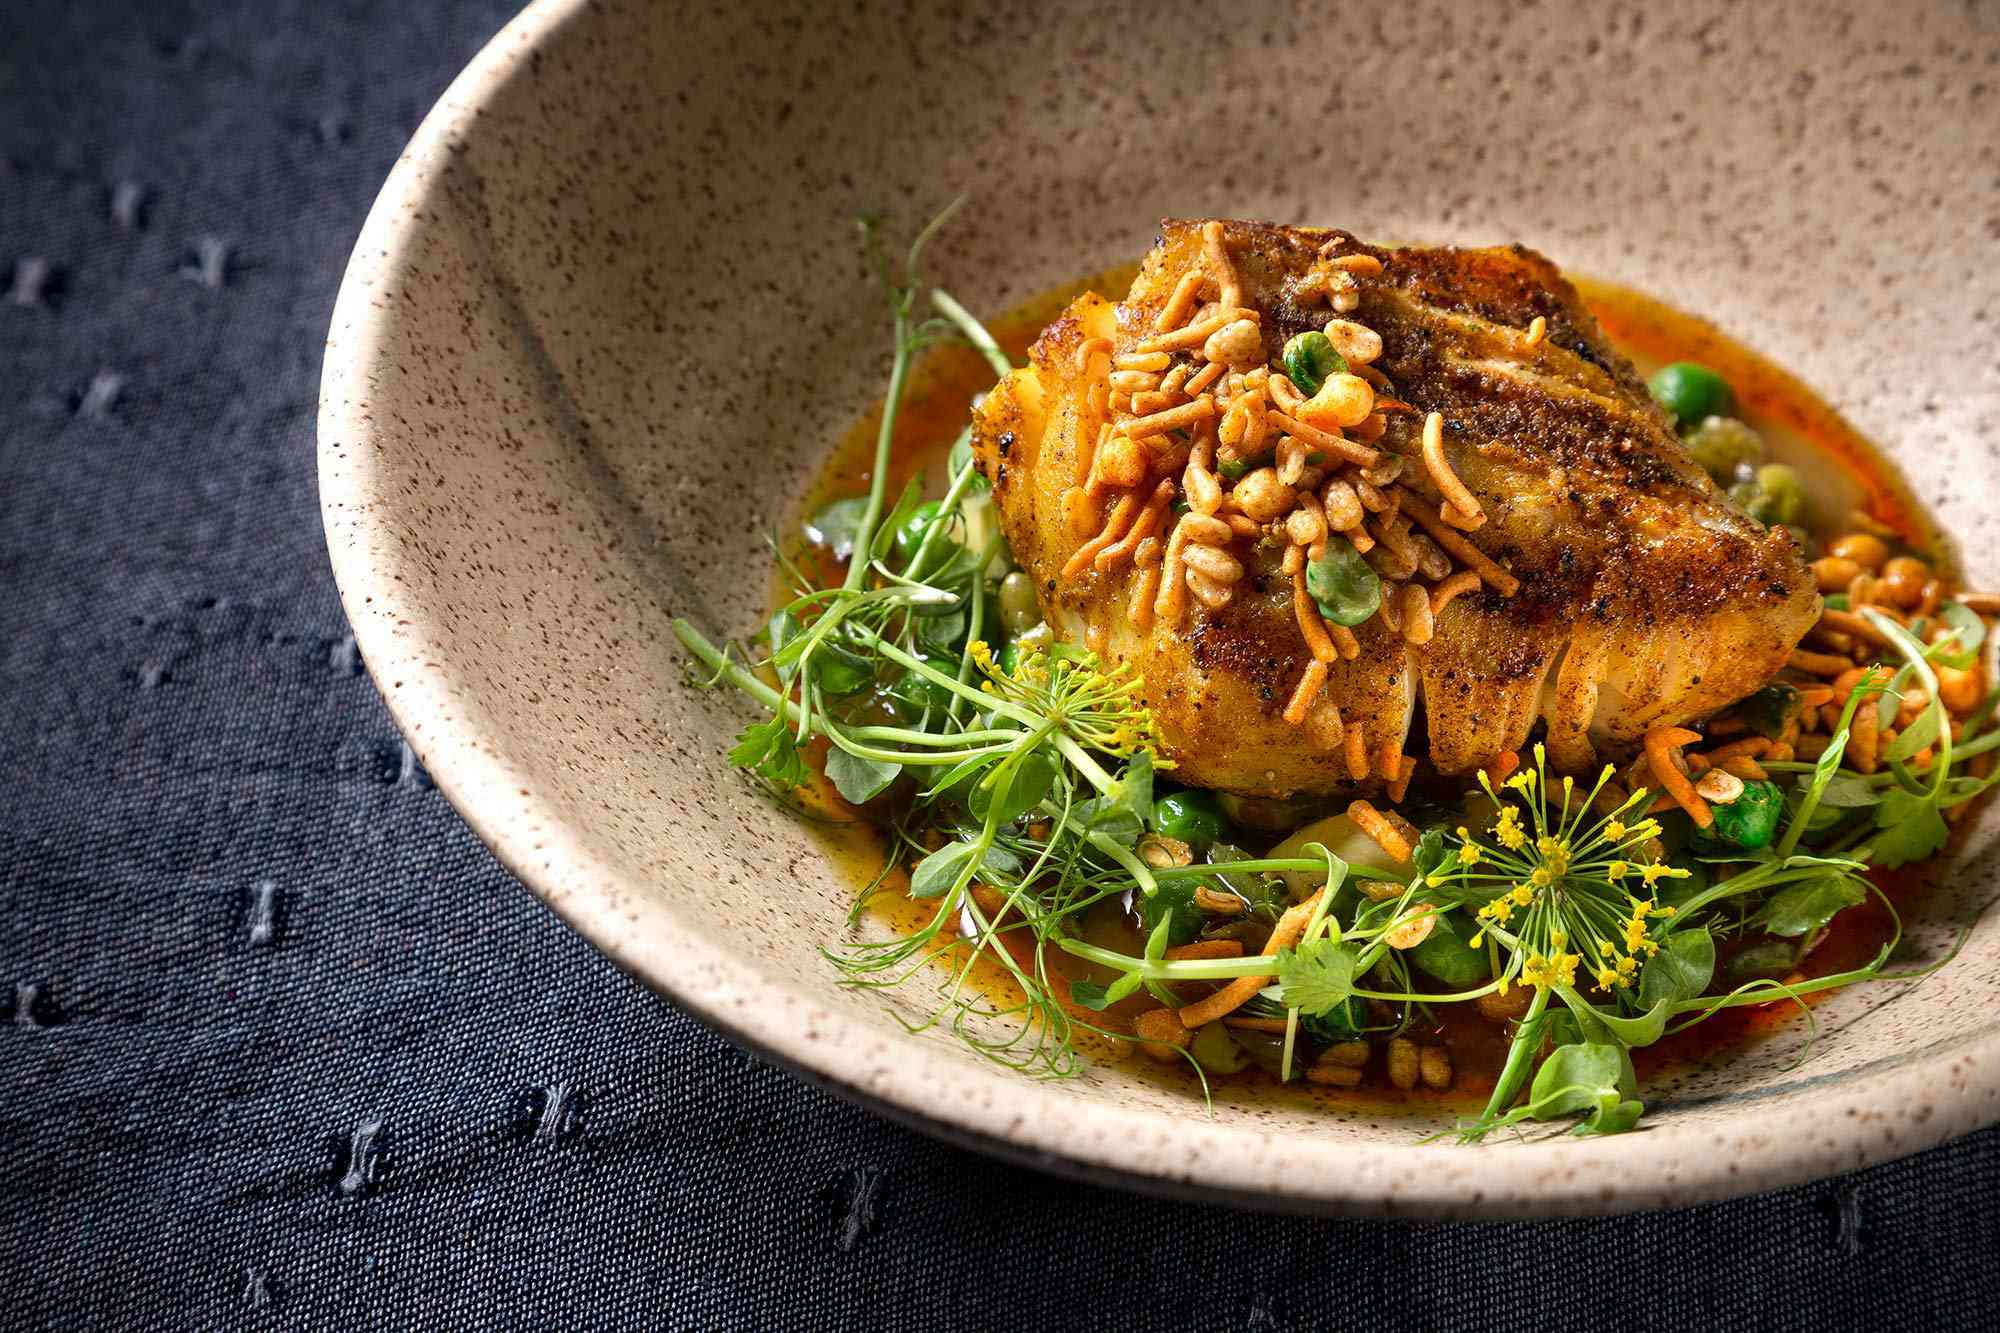 Grilled cod in a stone bowl garnished with green sprouts